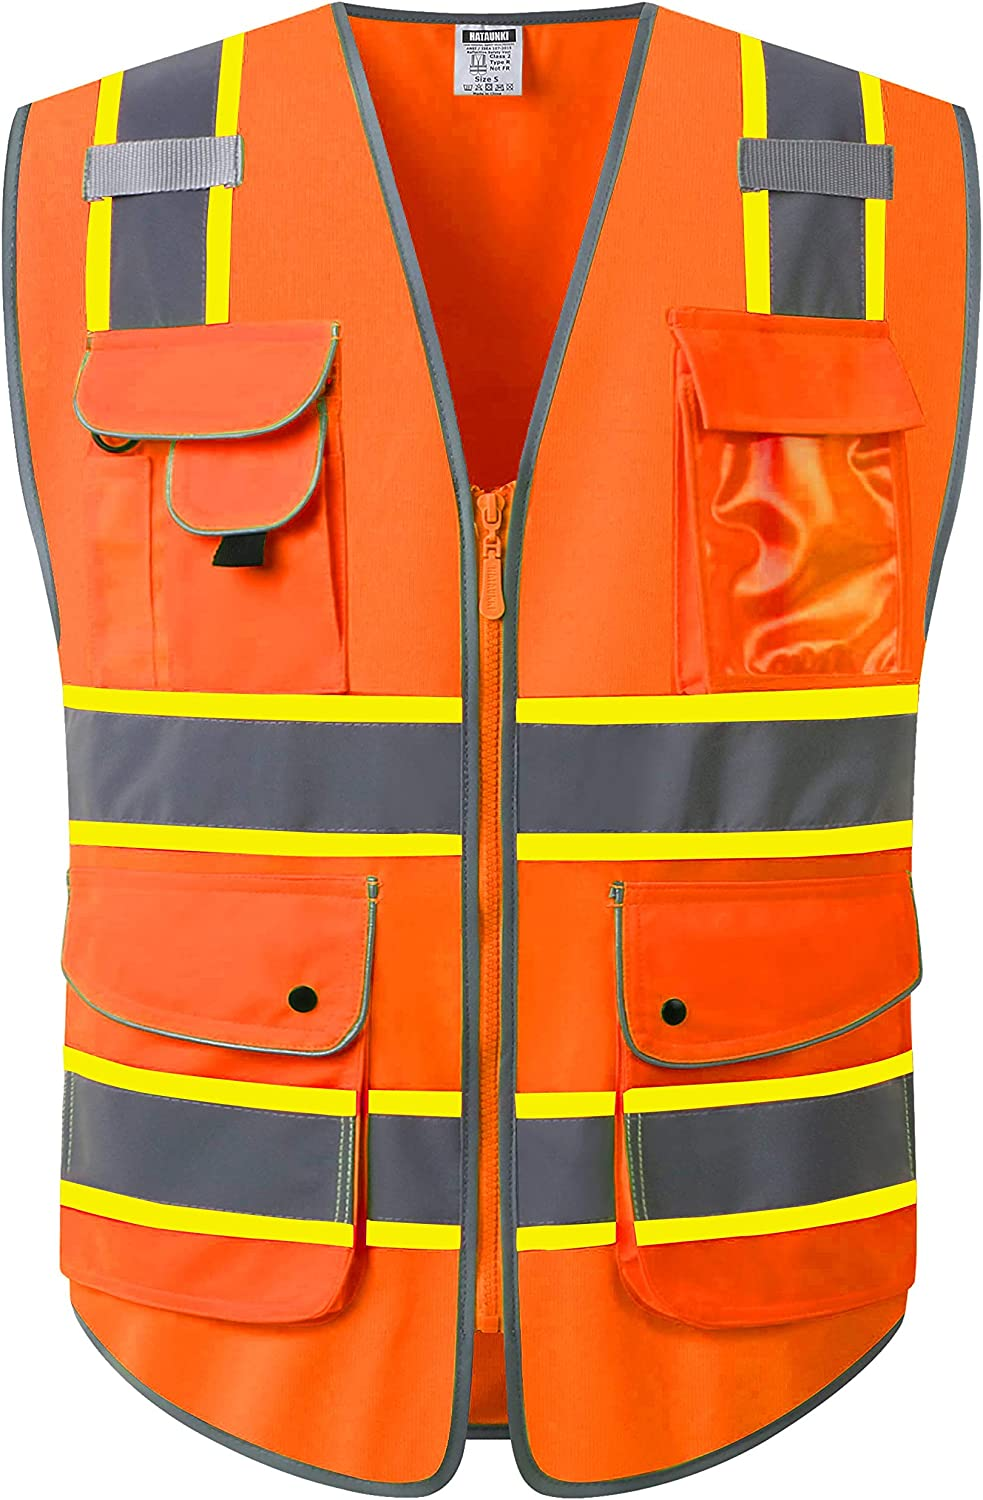 HATAUNKI Class 2 Retro-Reflection Vests Multi-Function Purchase Mesa Mall Safety 9